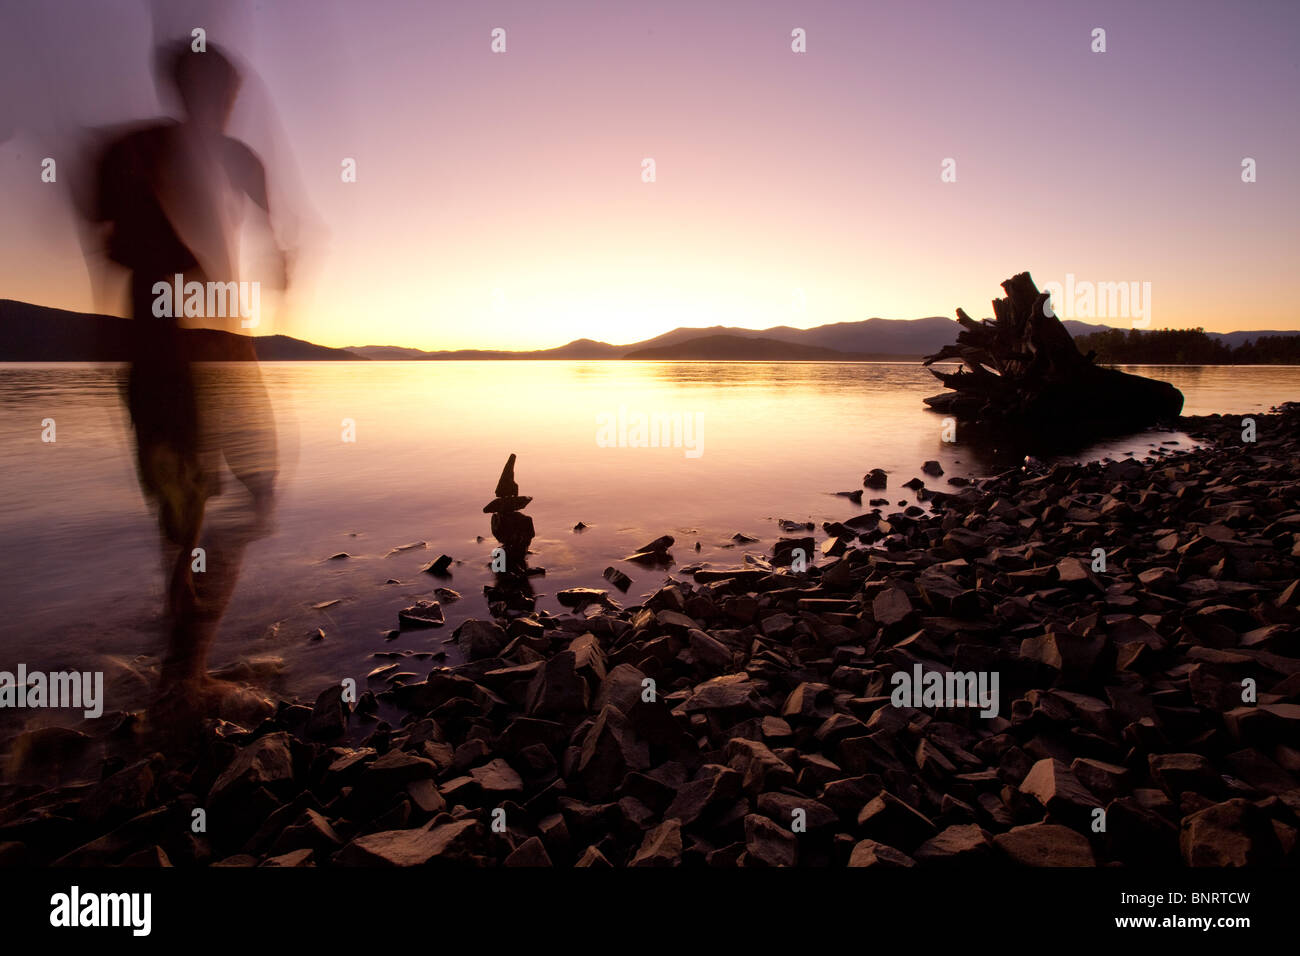 A male figure watching sunset over a lake and mountains in Idaho. Stock Photo